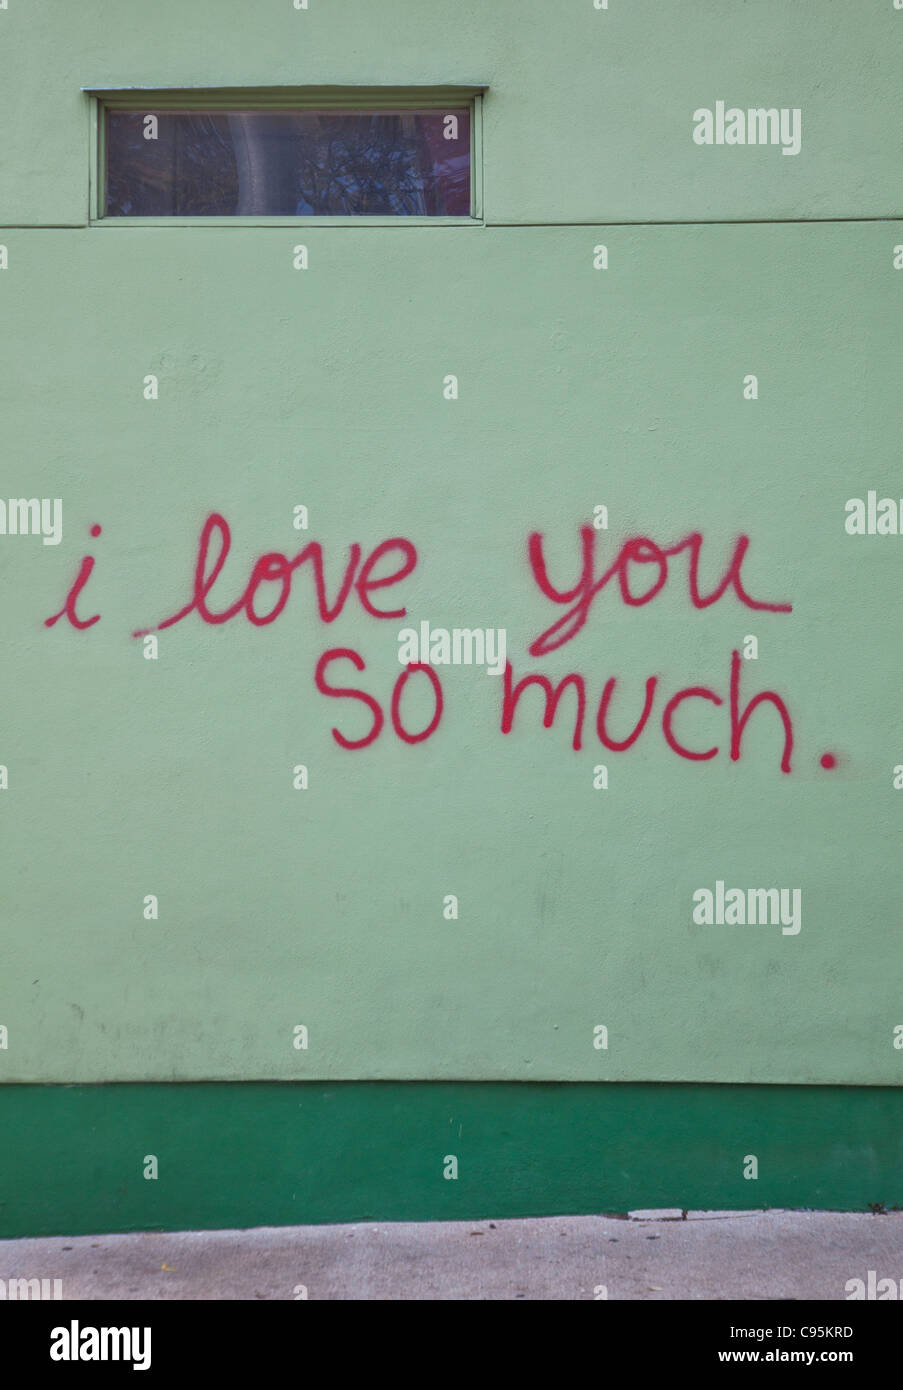 I love you so much graffiti at jos coffeeshop in austin texas